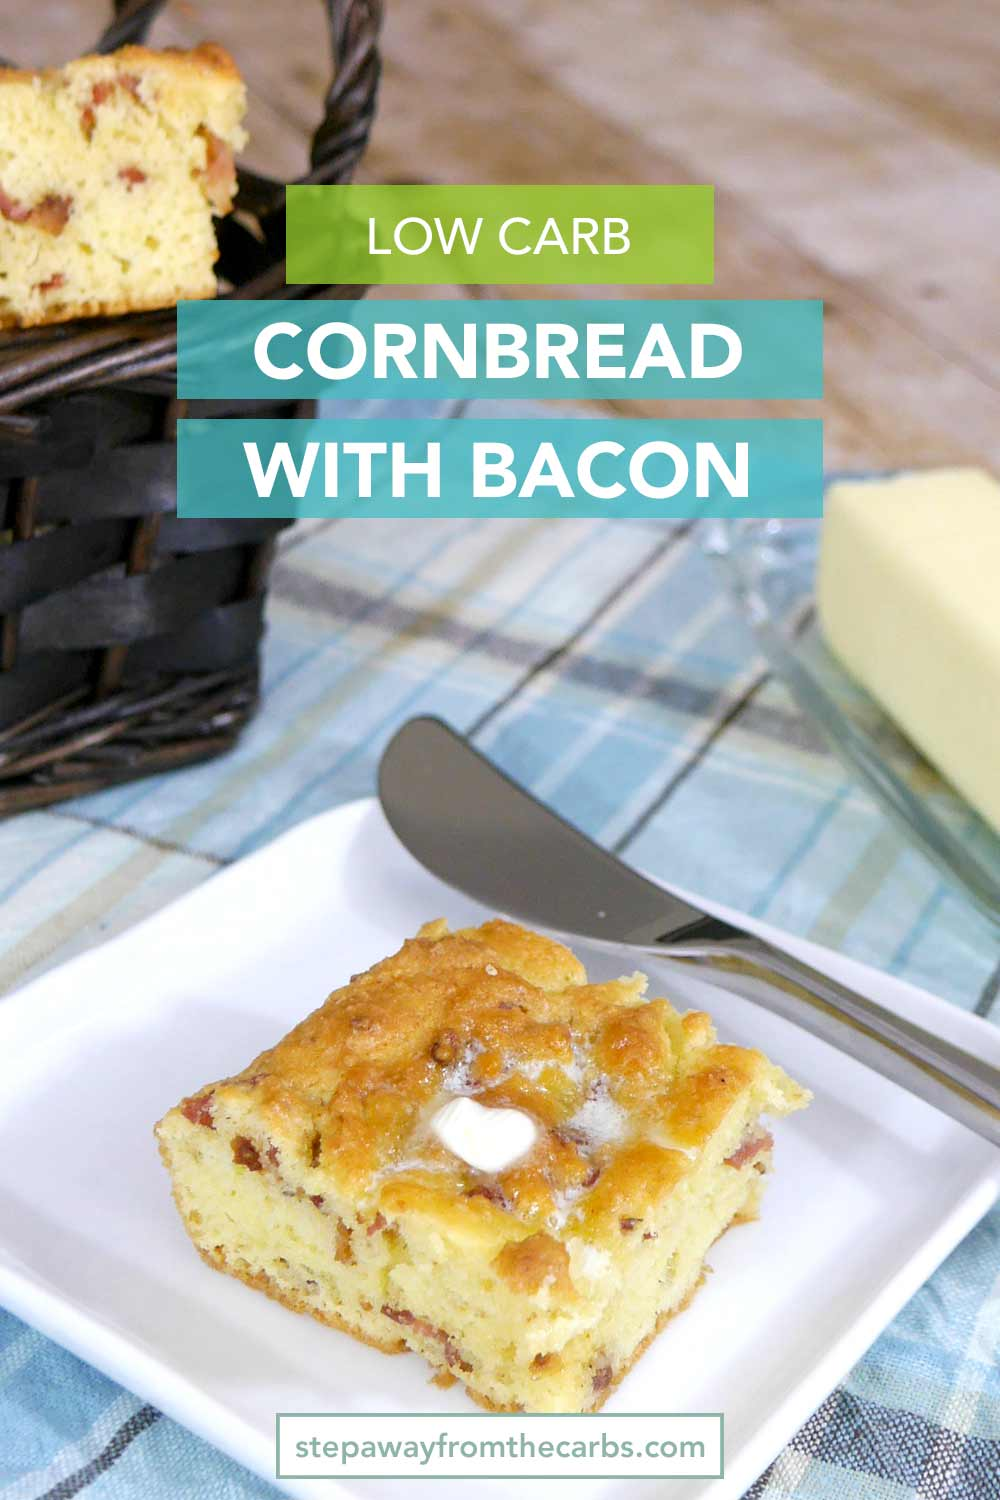 Low Carb Cornbread with Bacon - a low carb alternative to the traditional recipe